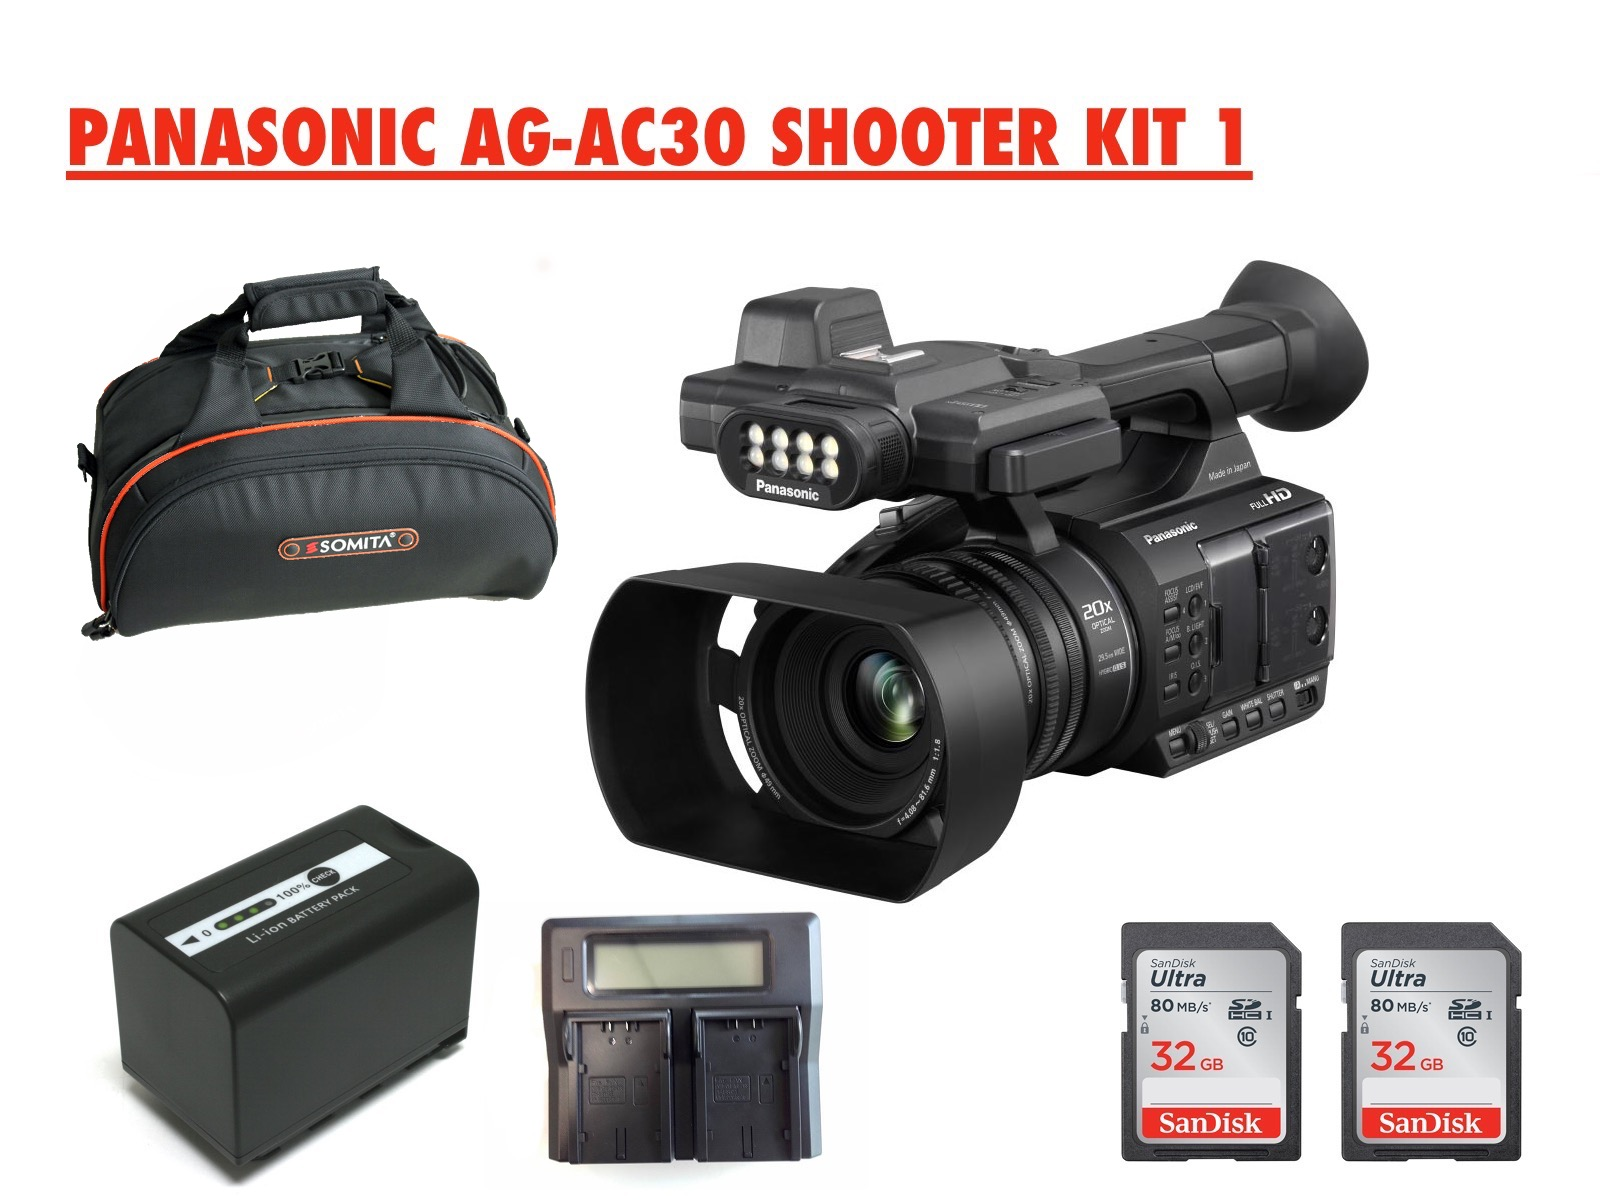 PANASONIC AG-AC30 SHOOTER KIT 1